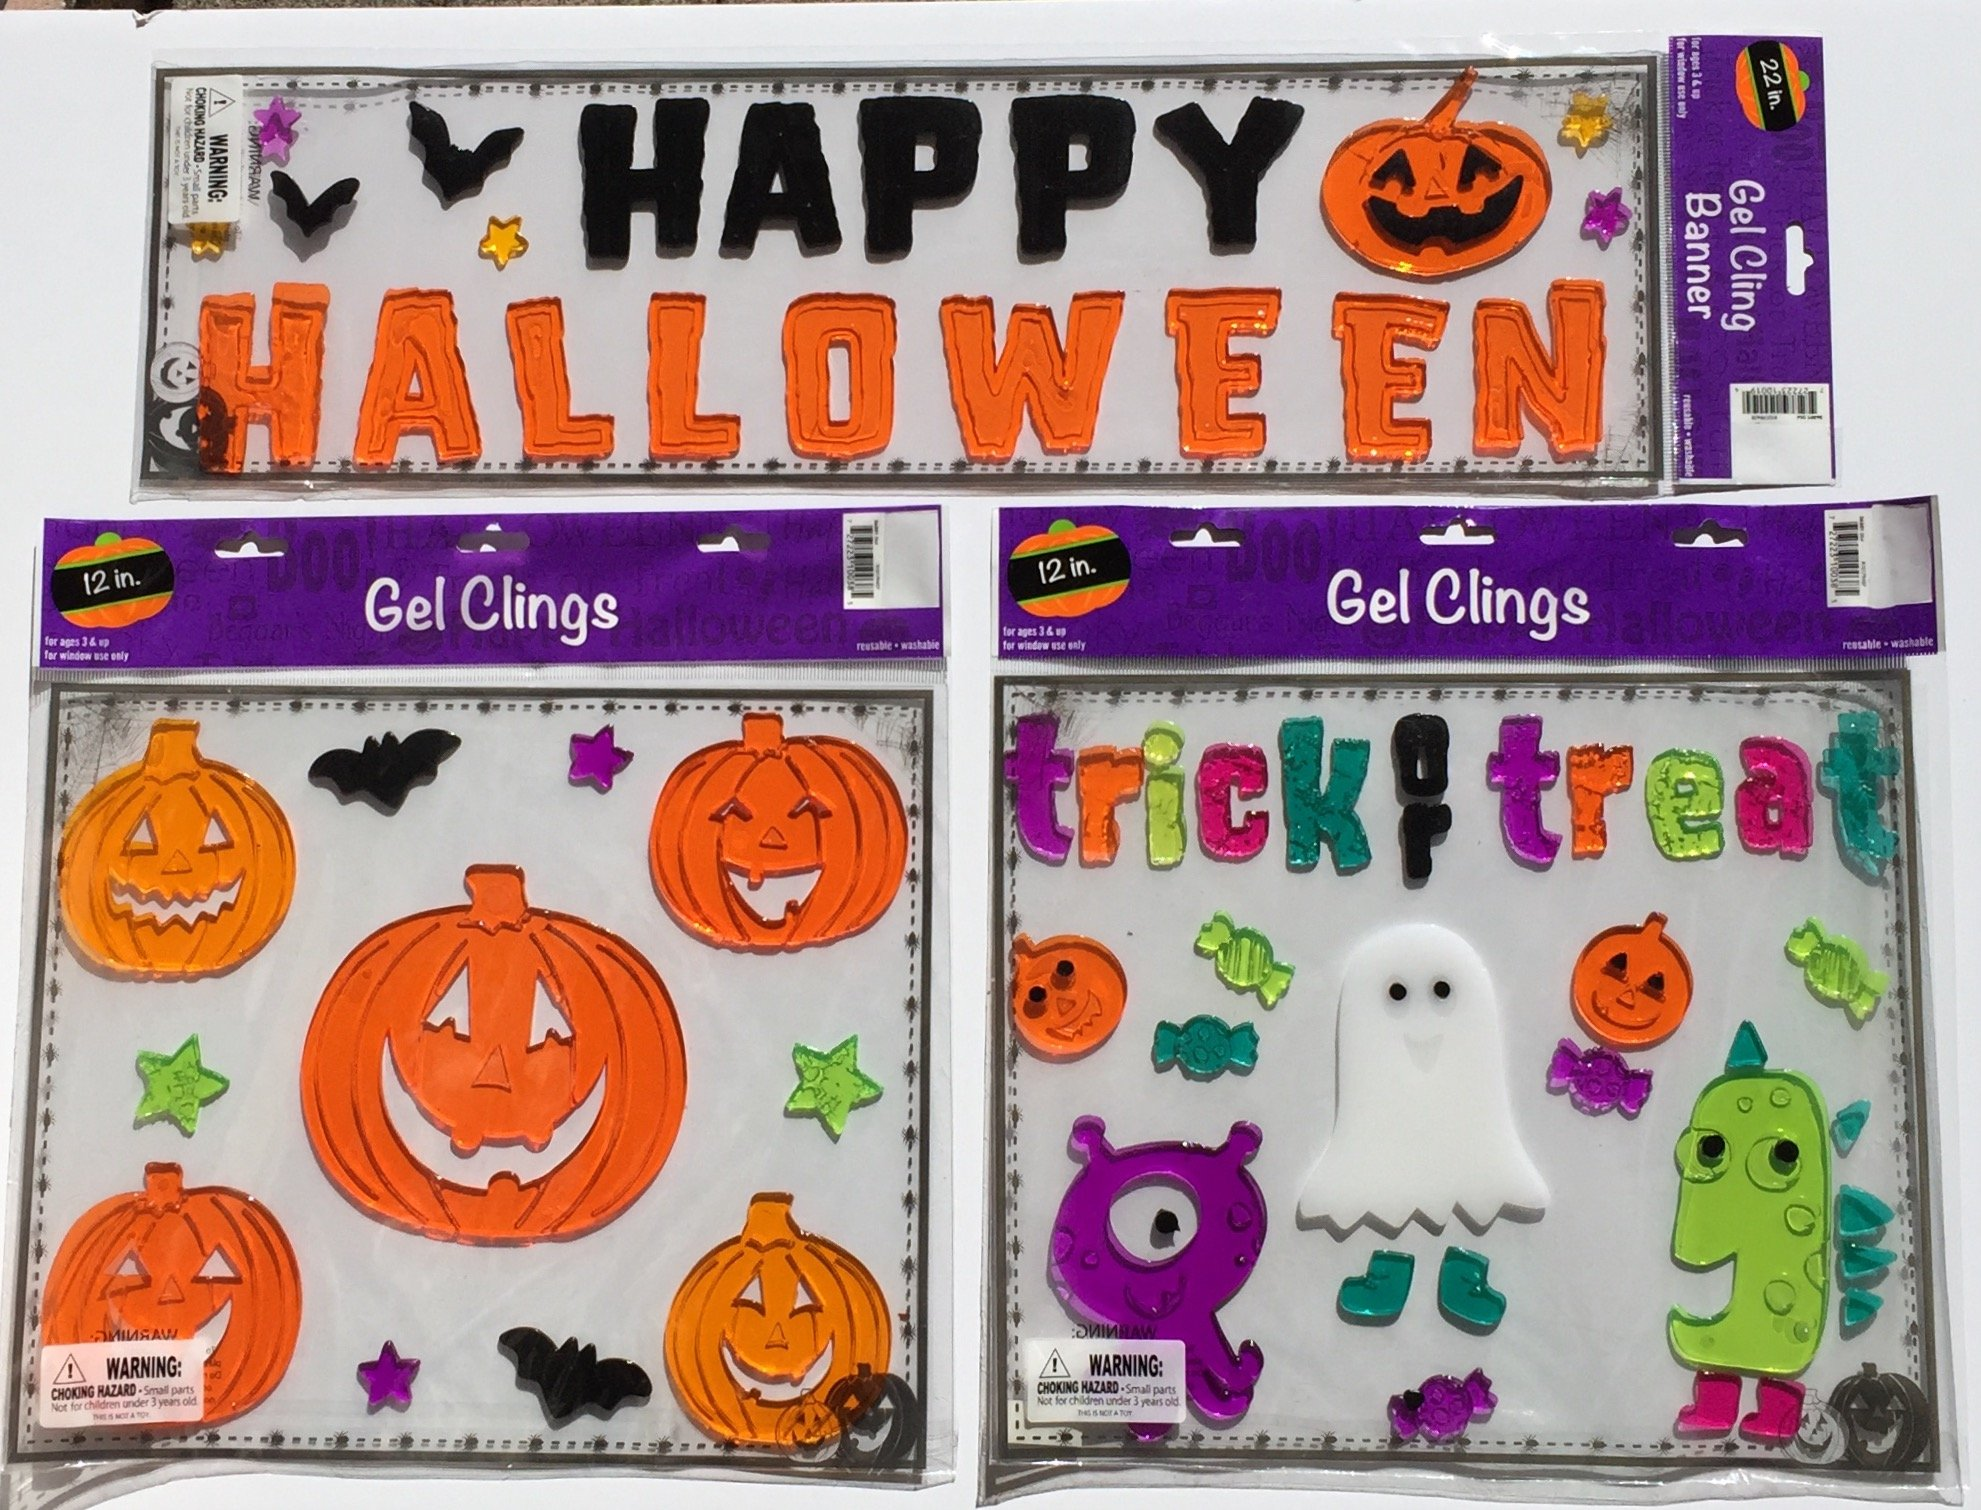 Happy Halloween Variety of Three (3) Gel Window Cling Trick or Treat Party Decoration, Silicone Gel. Monster, Pumpkins, Ghosts, Bats (3 Items)